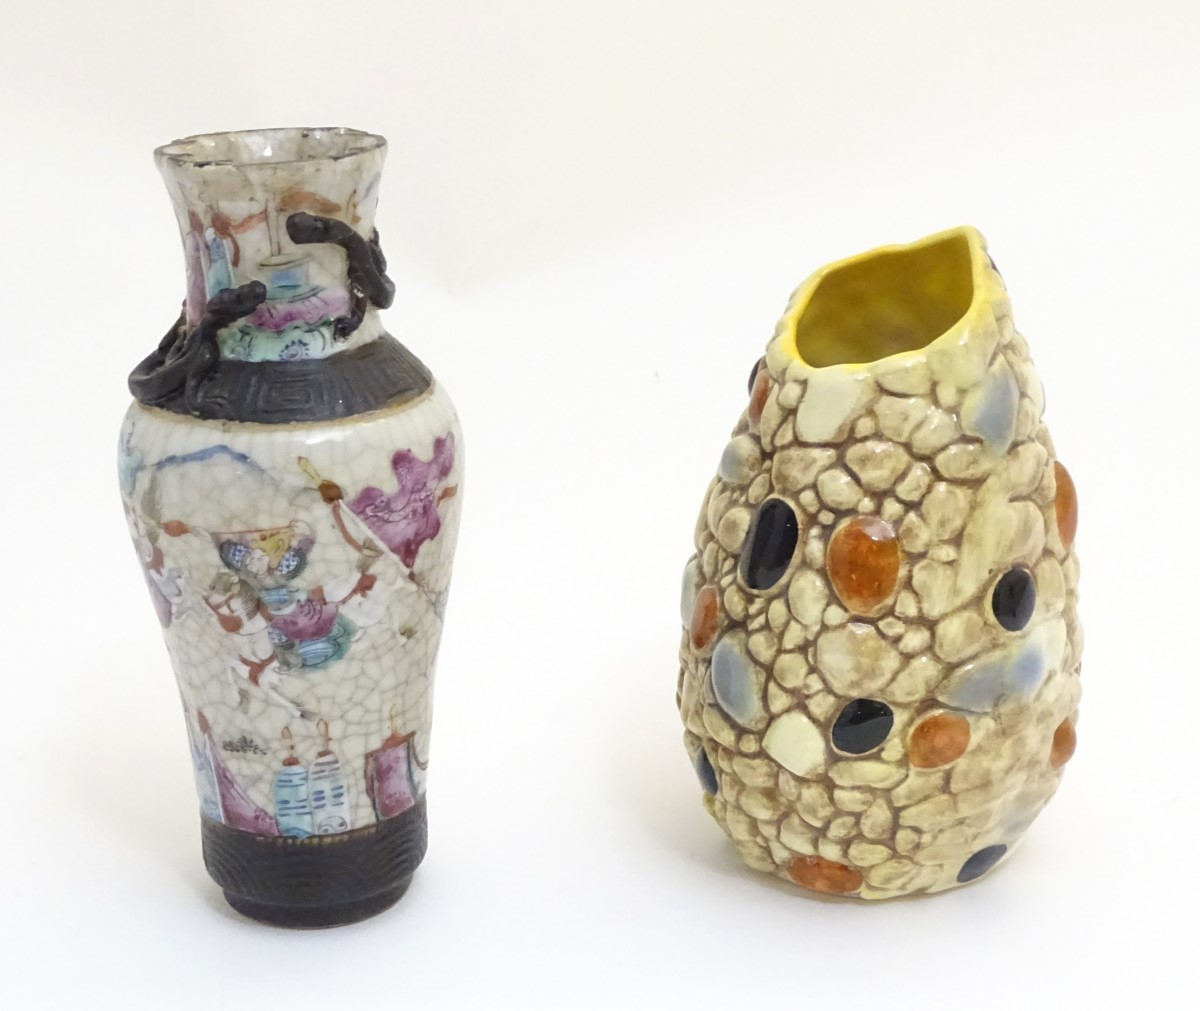 """Lot 49 - An asymmetrical Sylvac vase with pebble decoration. Impressed marks to base. Approx. 6 1/2"""" high."""